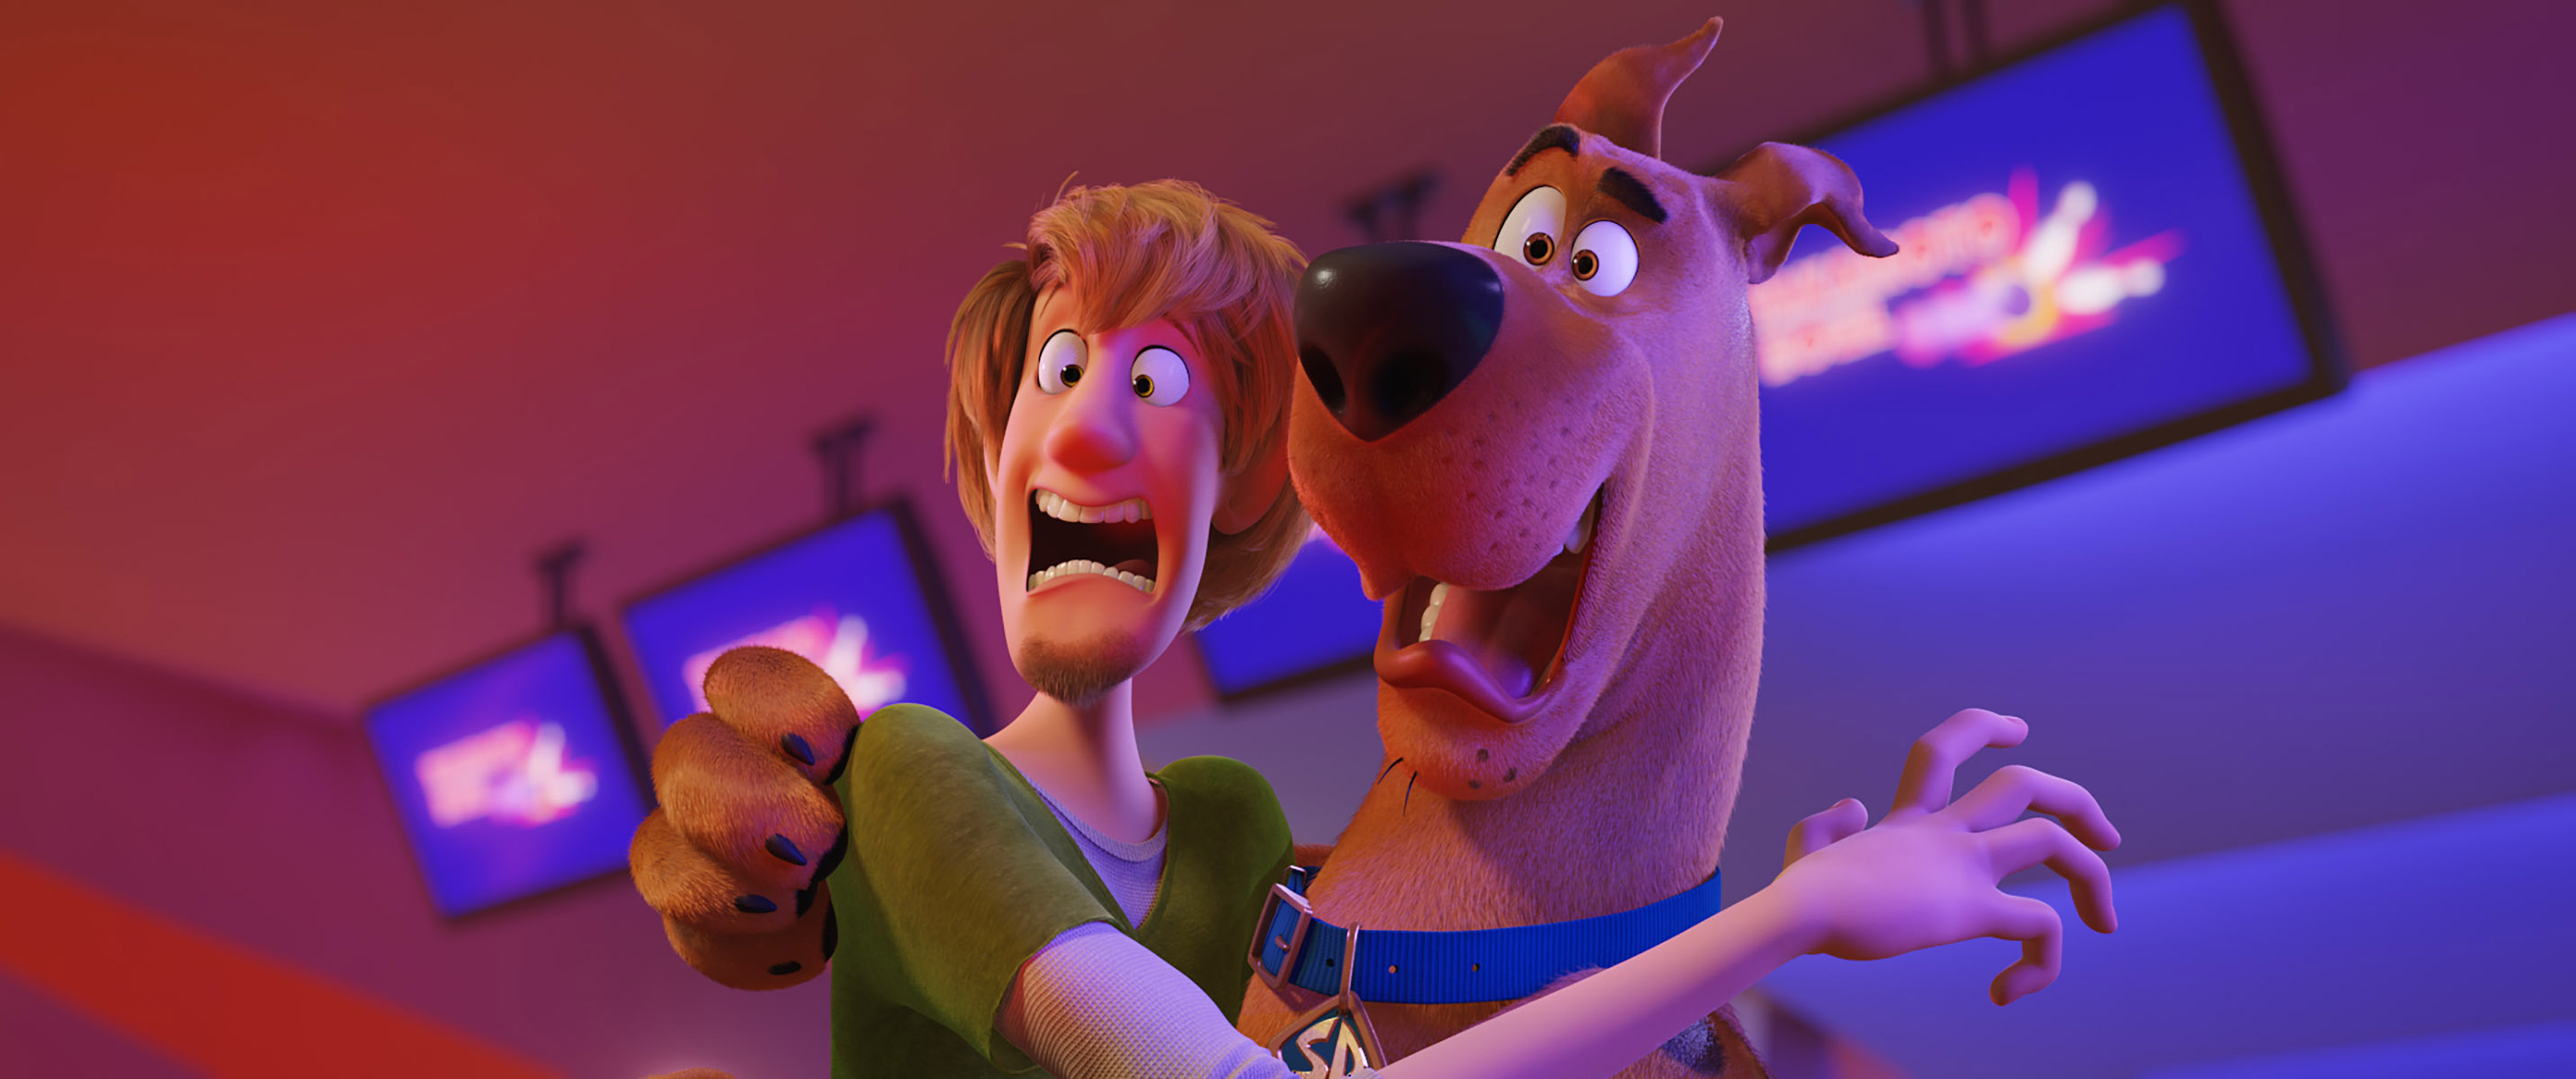 "(L-r) Shaggy voiced by WILL FORTE and Scooby-Doo voiced by FRANK WELKER in the new animated adventure ""SCOOB!"" from Warner Bros. Pictures and Warner Animation Group. Courtesy of Warner Bros. Pictures"